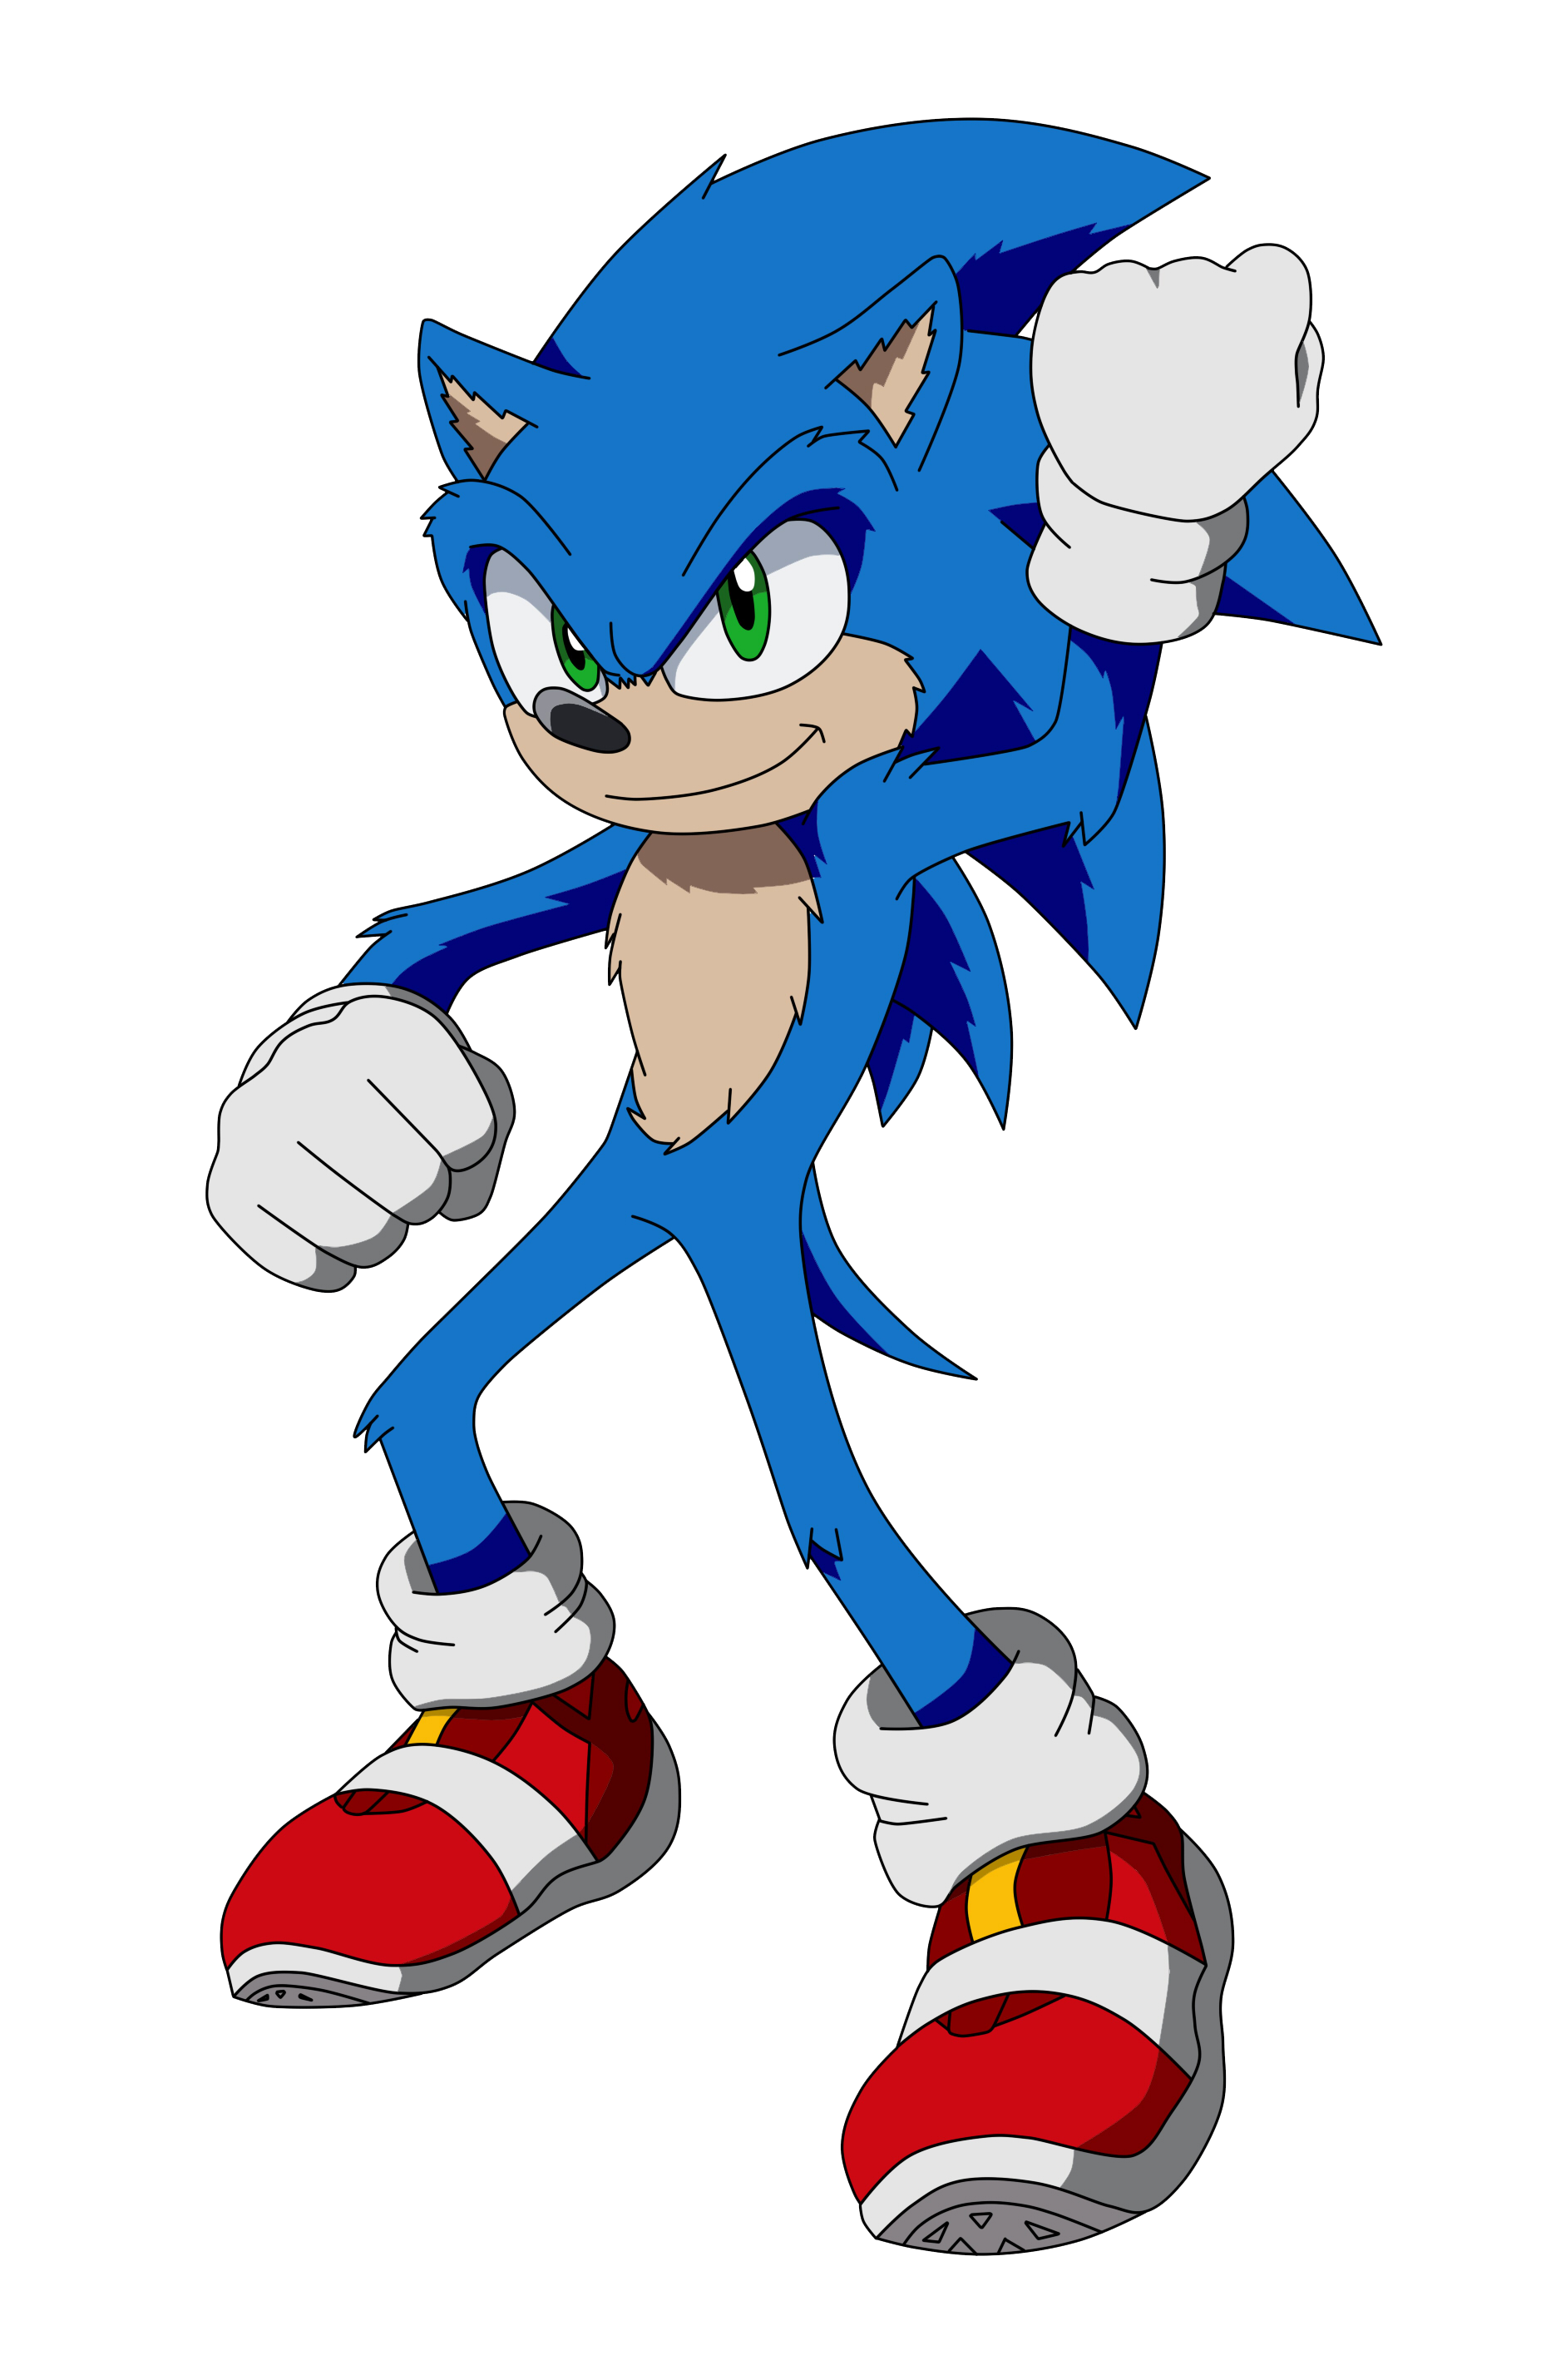 Sonic Movie By Artsonx On Deviantart In 2020 Sonic Sonic The